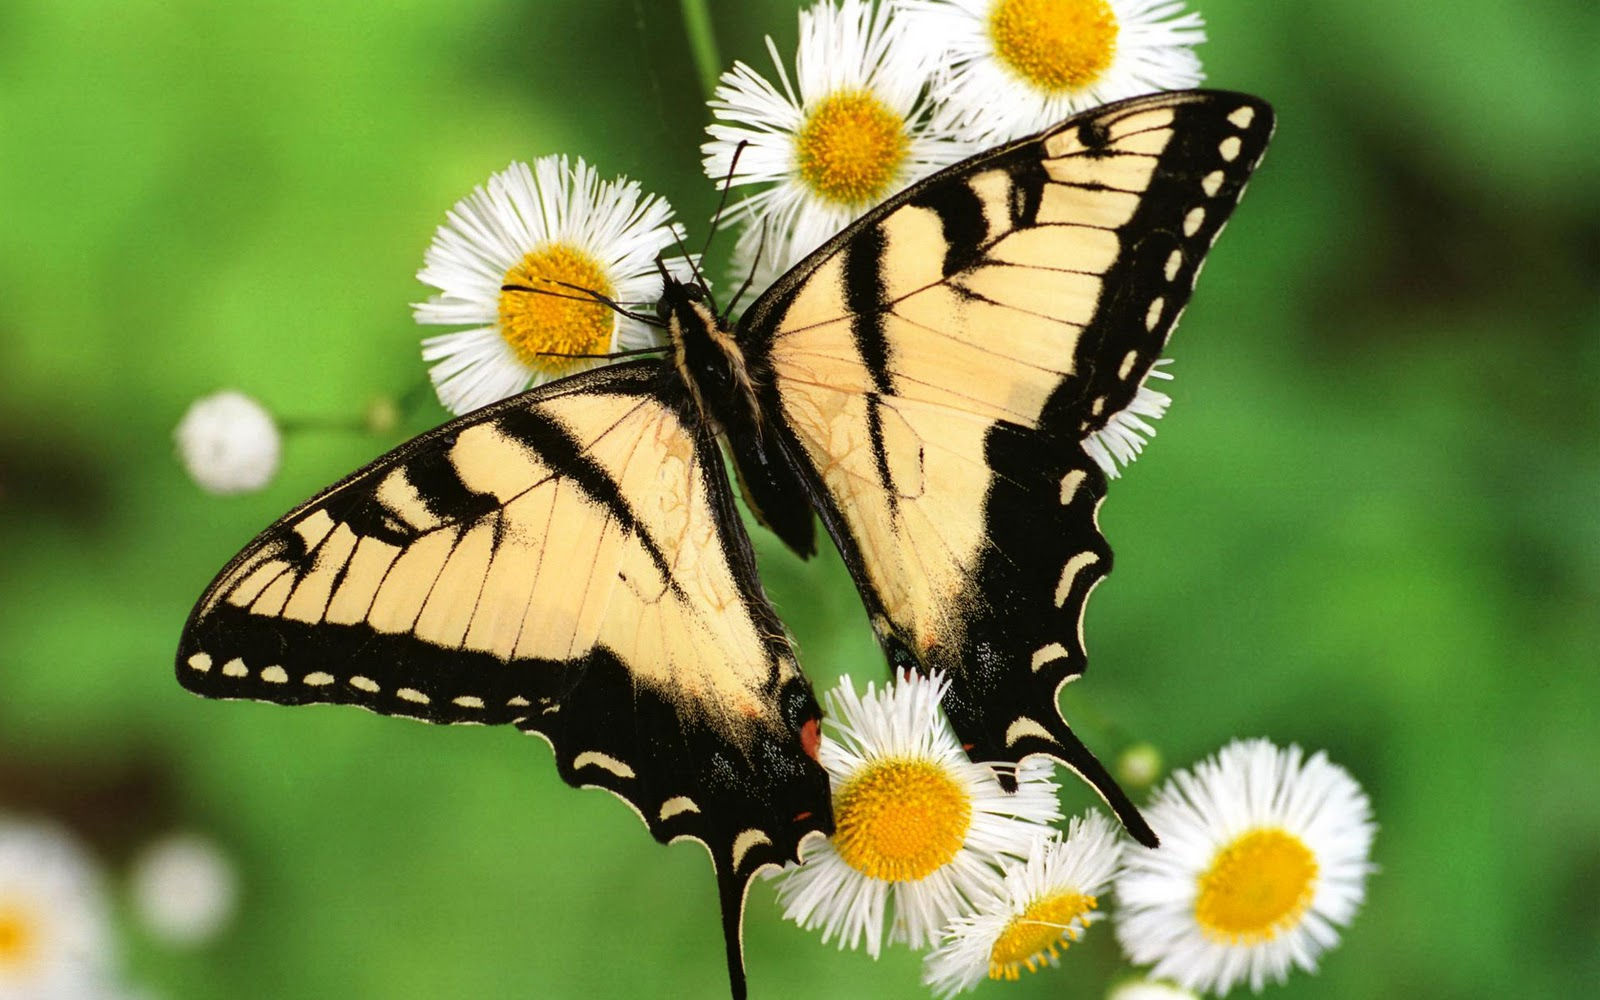 Tiger Swallowtail Butterfly free desktop backgrounds and  - tiger swallowtail butterfly wallpapers